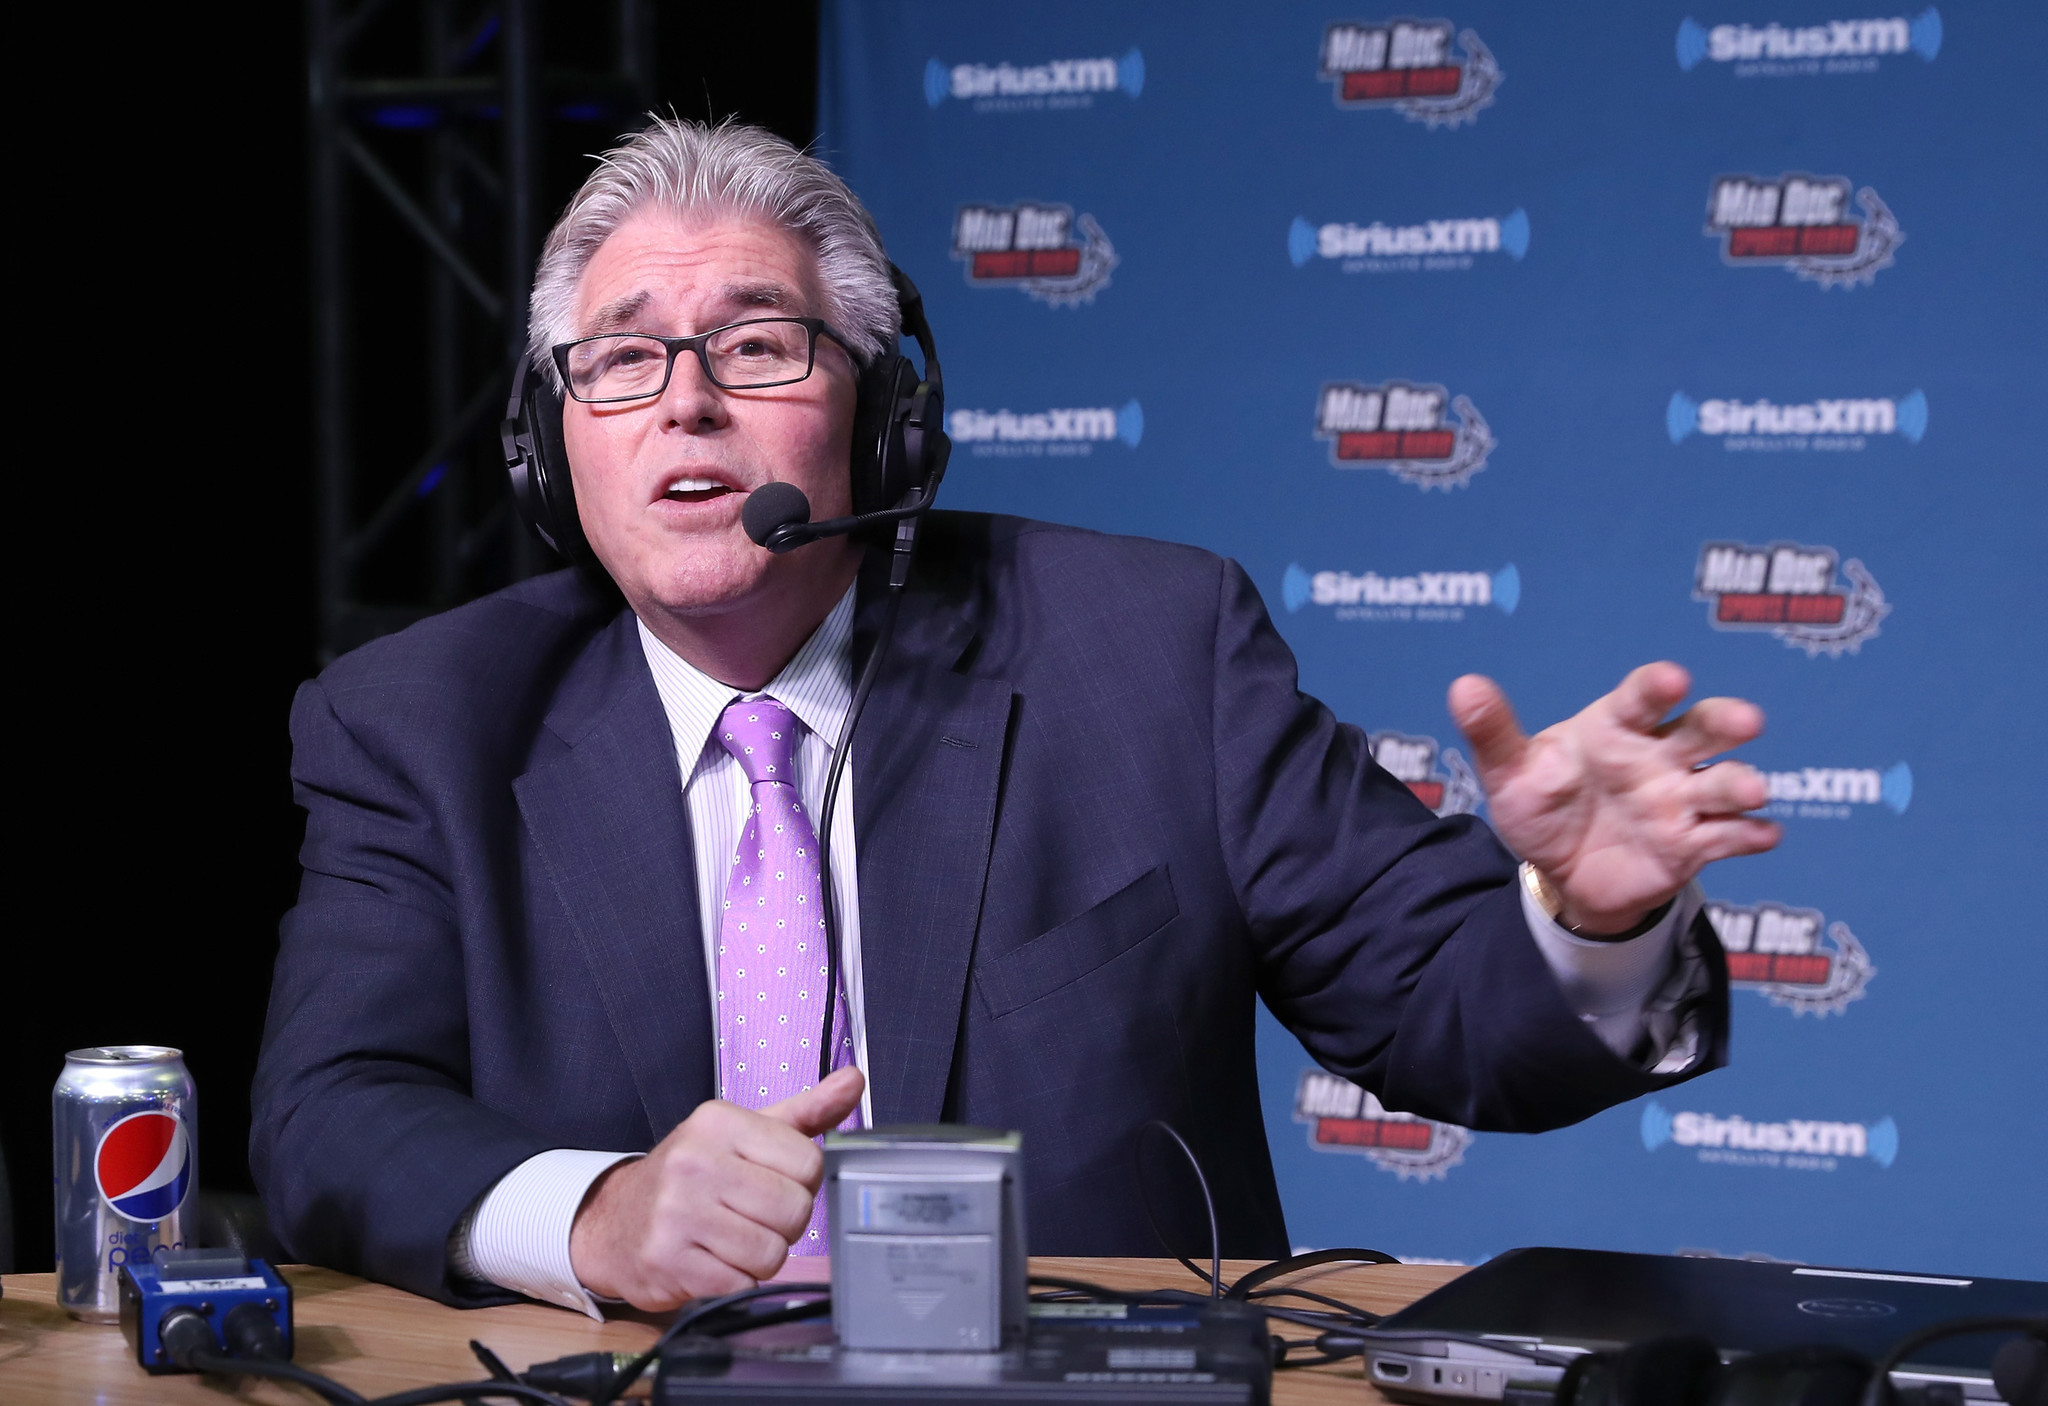 From Stephen A. Smith to Mike Francesa: Raissman's Top 10 sports media moments in 2019